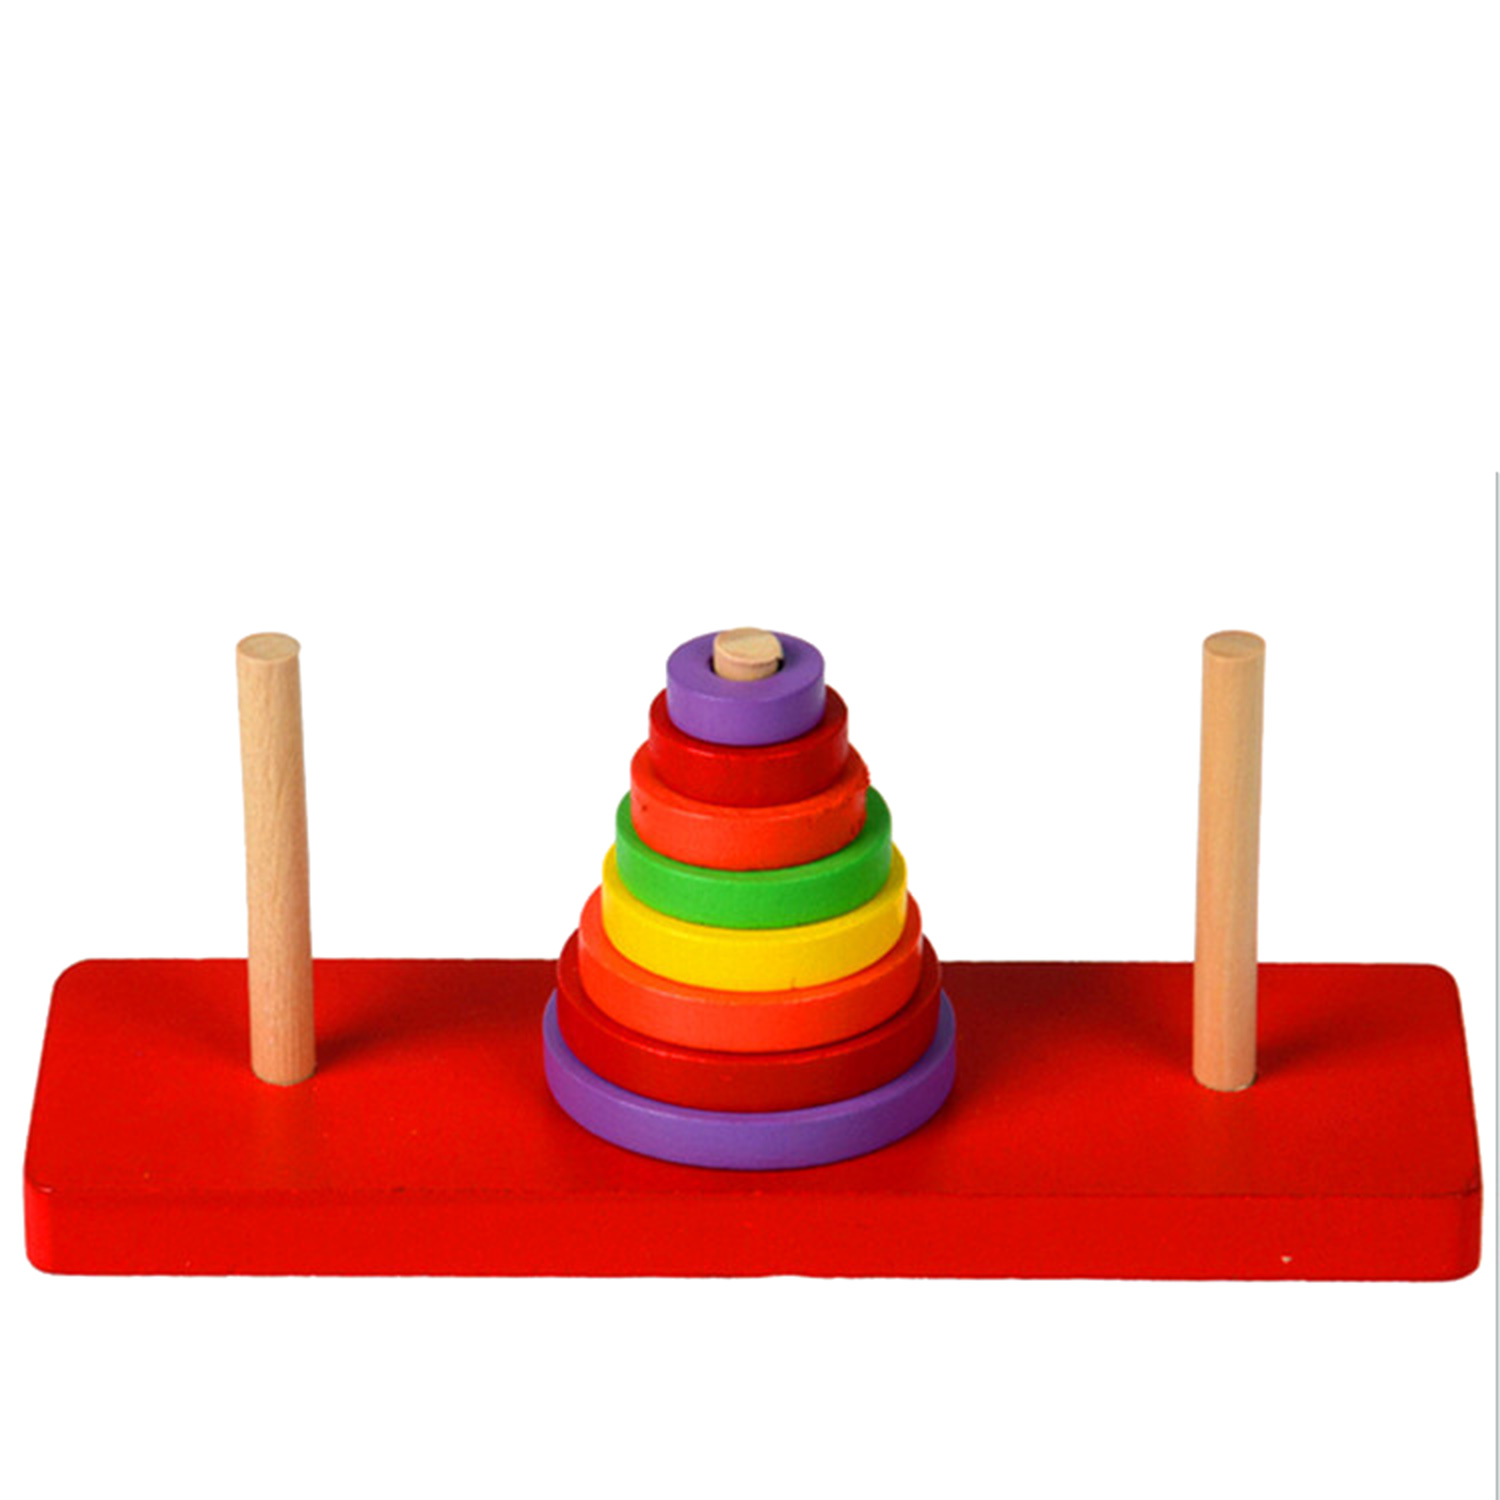 8 Layers Baby Cartoon Wooden Rainbow Ring Tower Stacking Blocks Matching Stack Up Blocks Early Learning Educational Toy